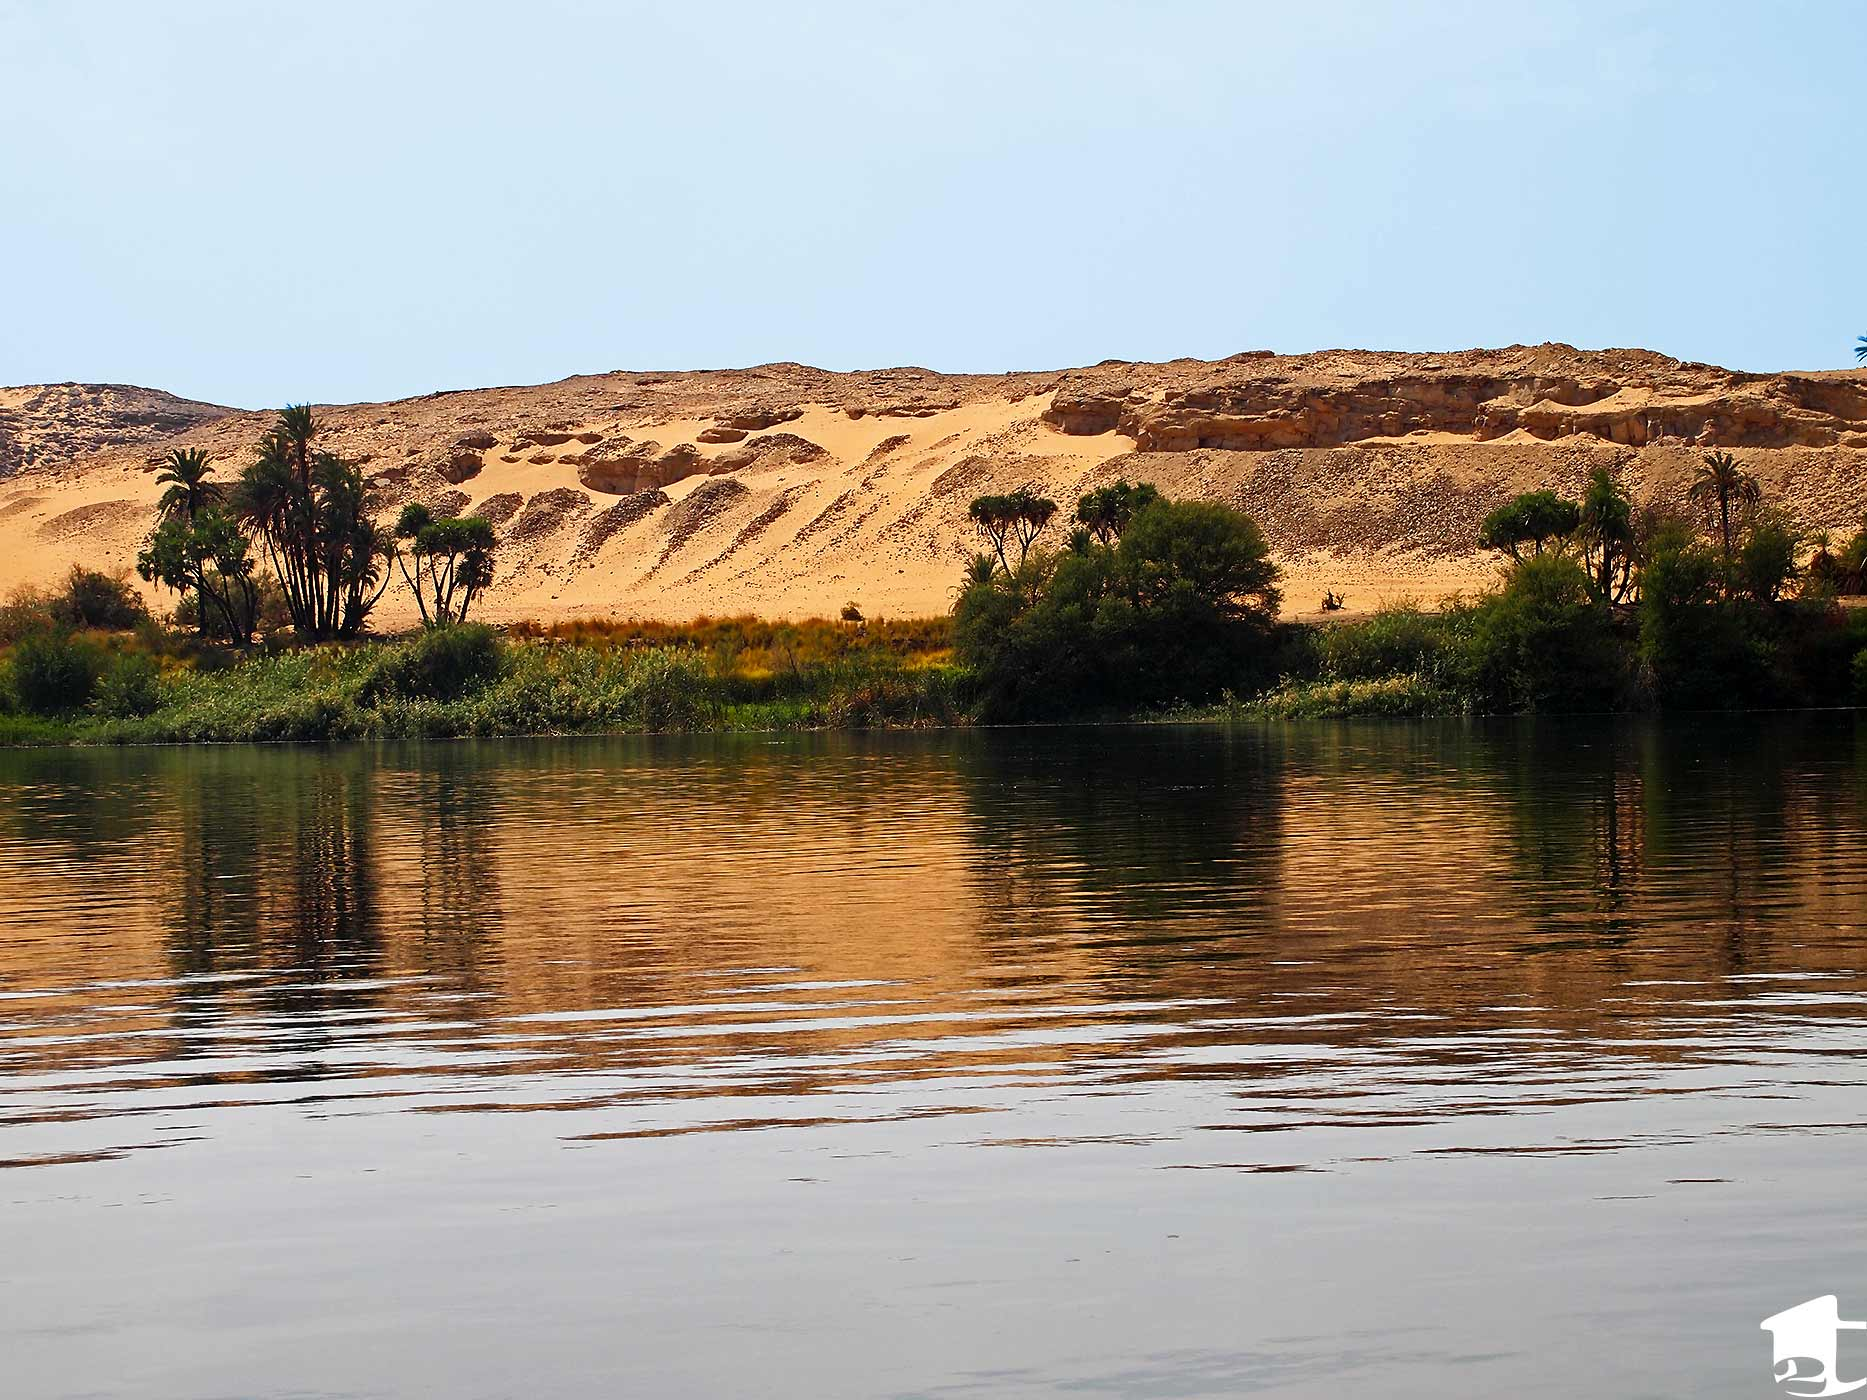 Beautiful view from the Nile